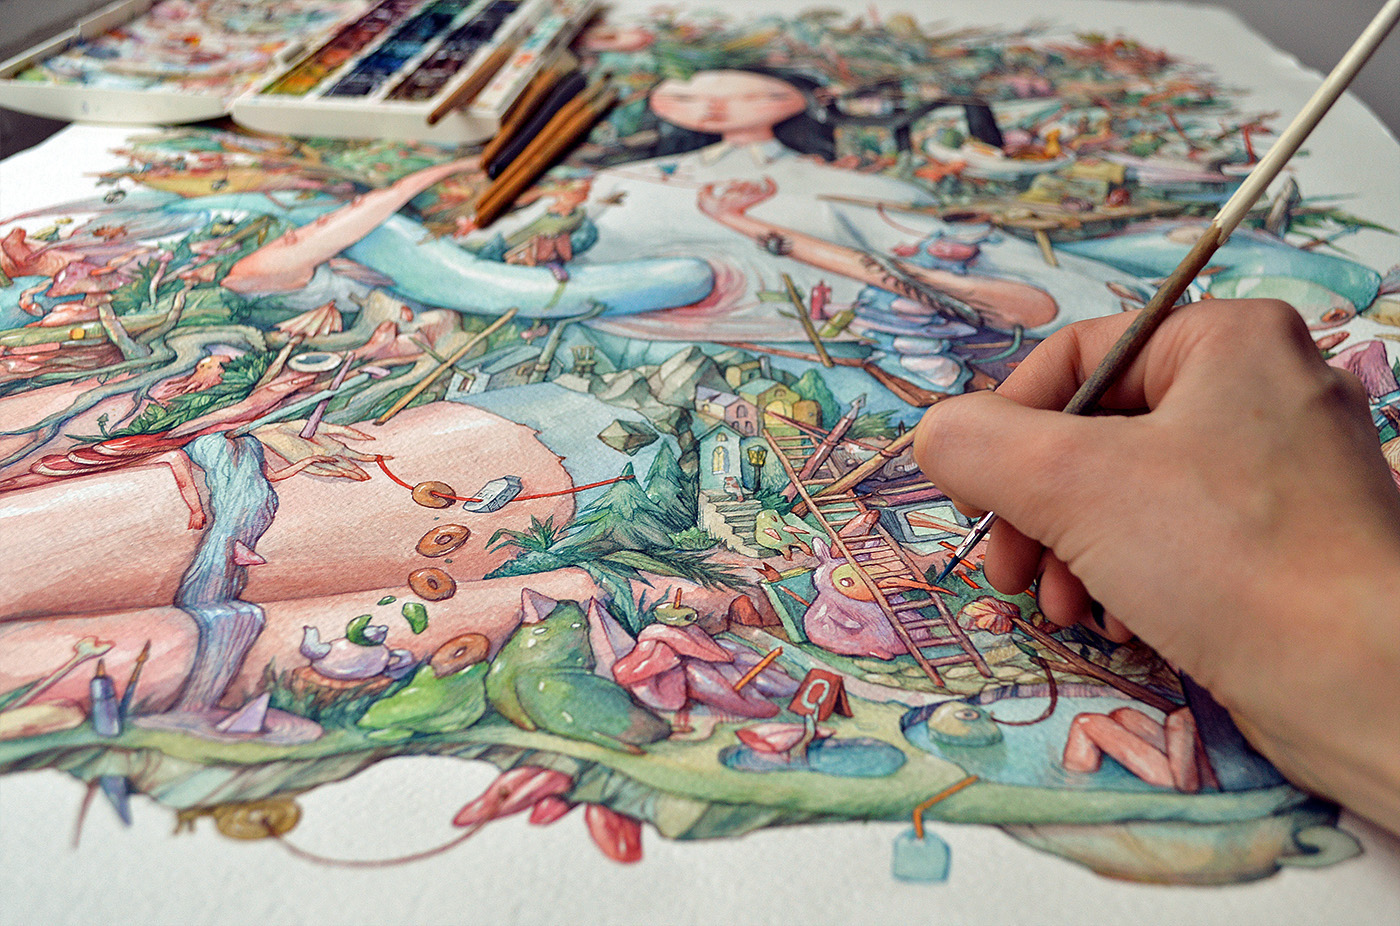 Illustration & Painting: My Giant Watercolor Eden